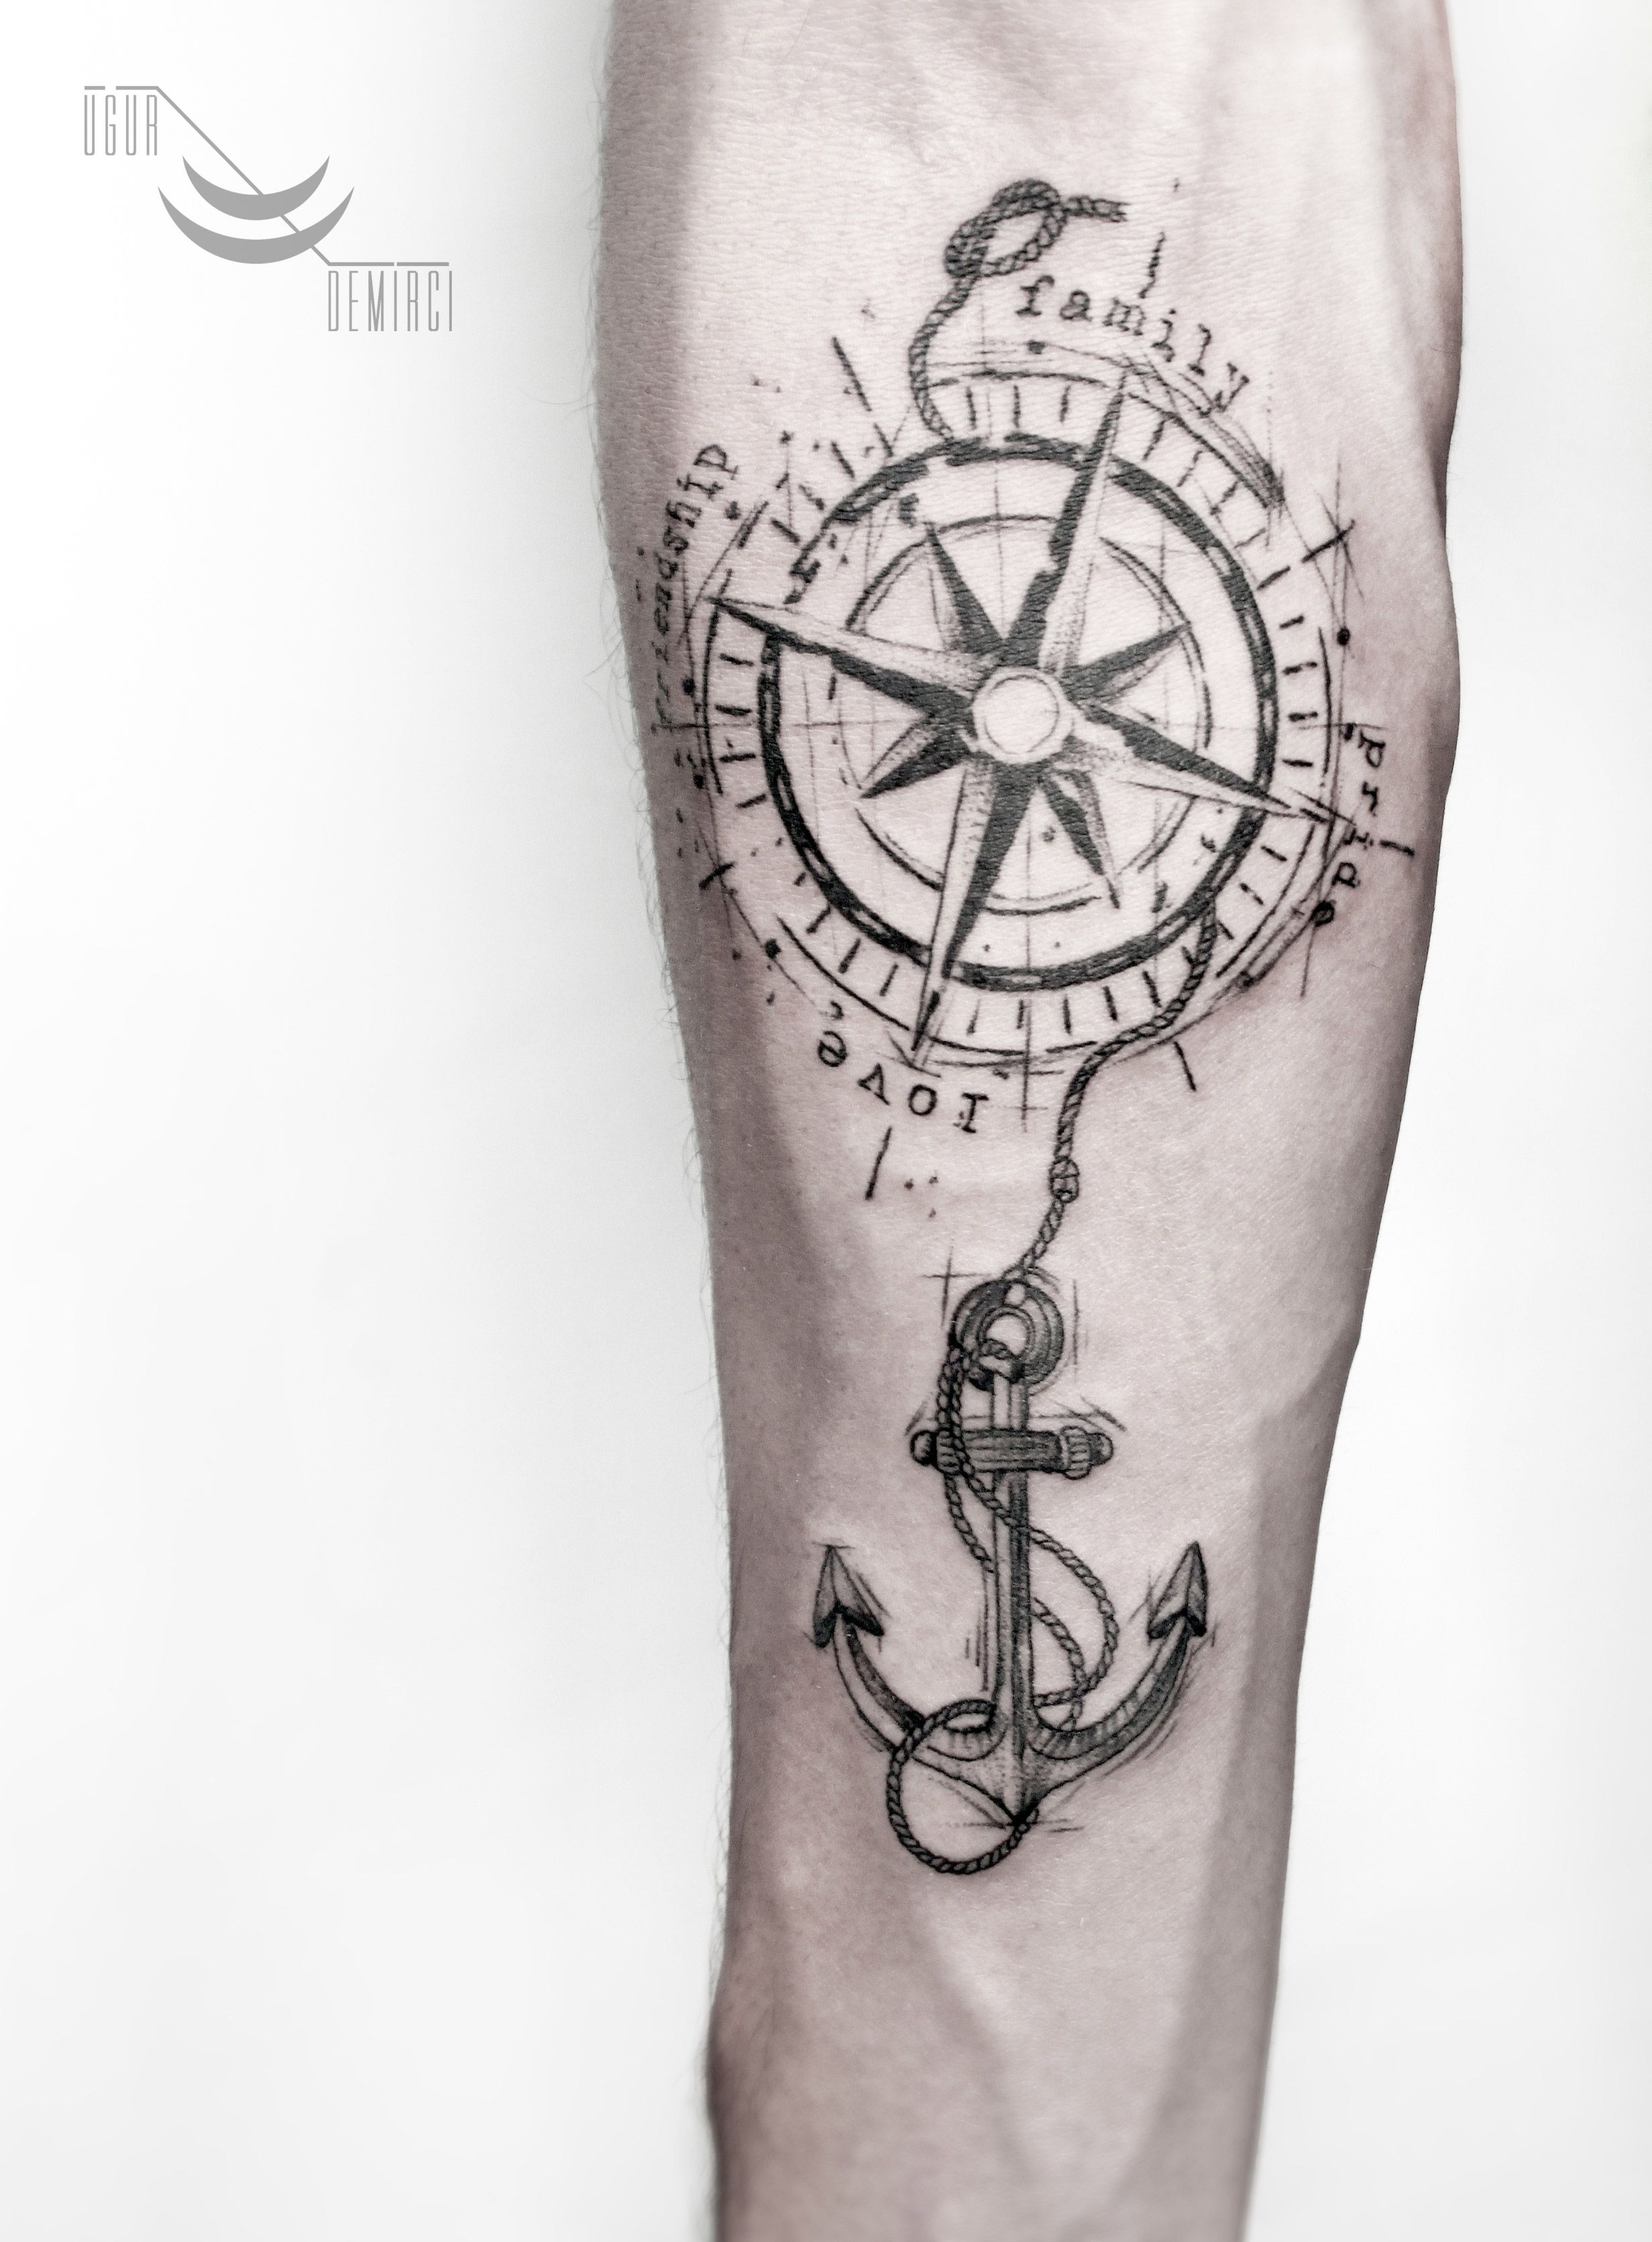 Sketch Compass Tattoo Lacenano Tattoodemirci Customwork Sketch Anchor Drawing Compasstattoo Tattoomaga Compass Tattoos Arm Hook Tattoos Compass Tattoo